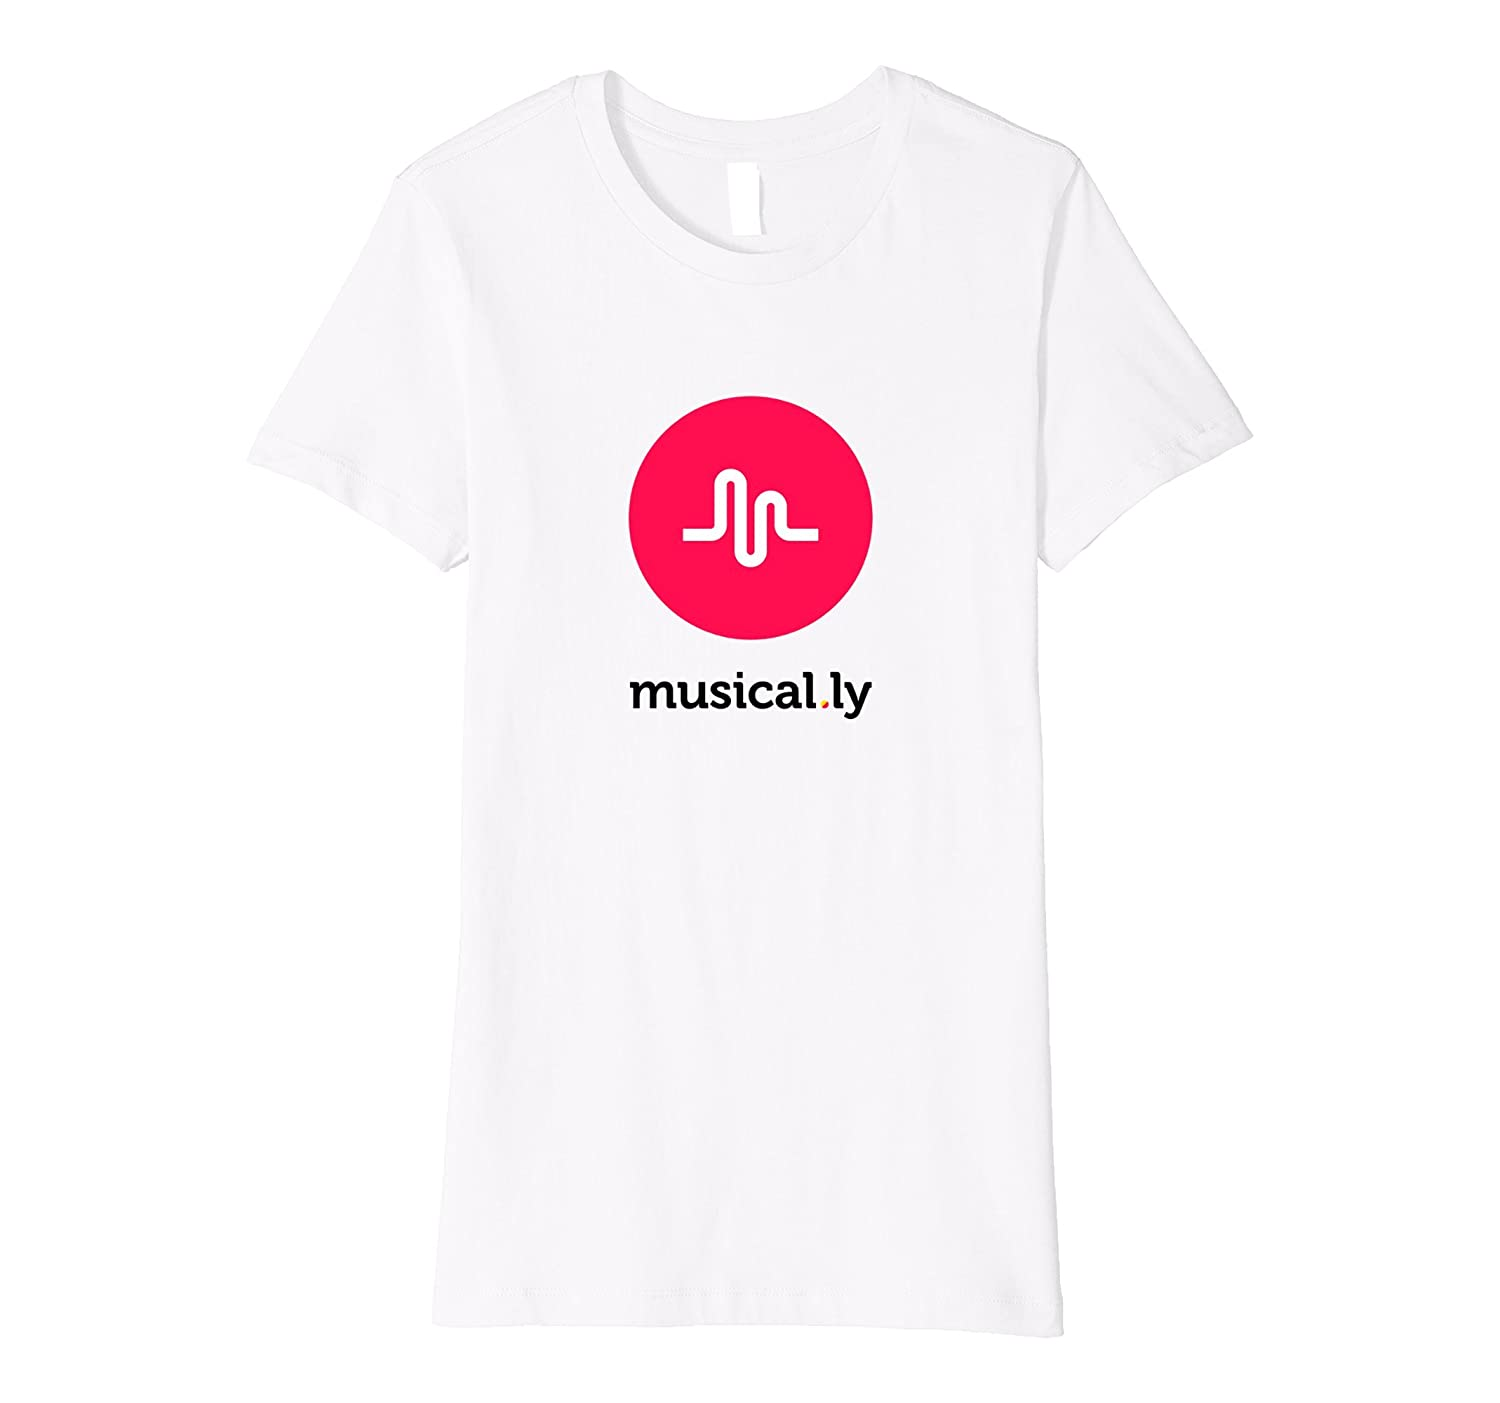 Amazon.com: 'musical.ly' T-Shirt (White - Fitted Cut): Clothing